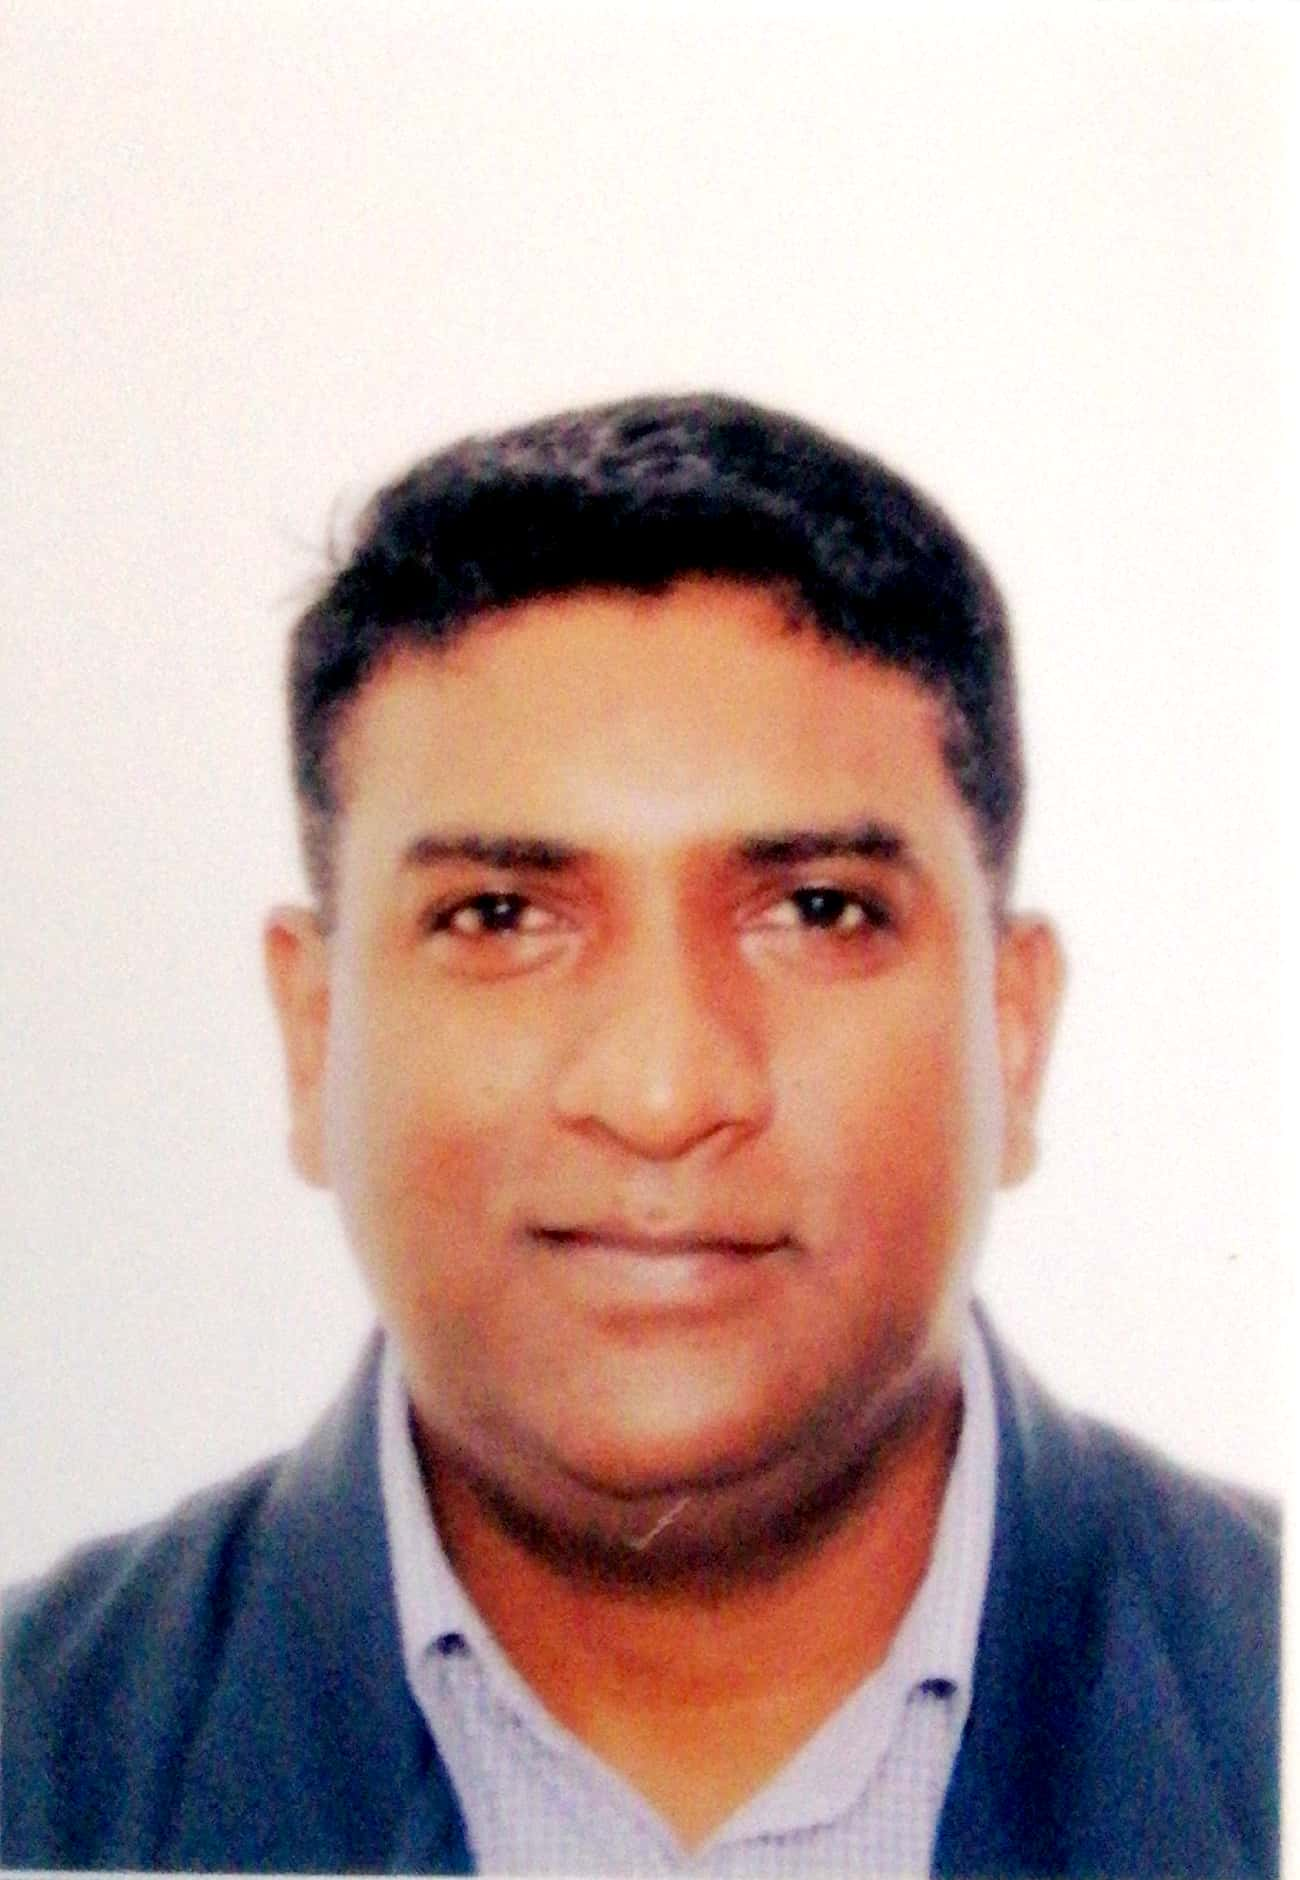 Mahendran Thevar smiles in a passport photo. He has thick hair and a round face.